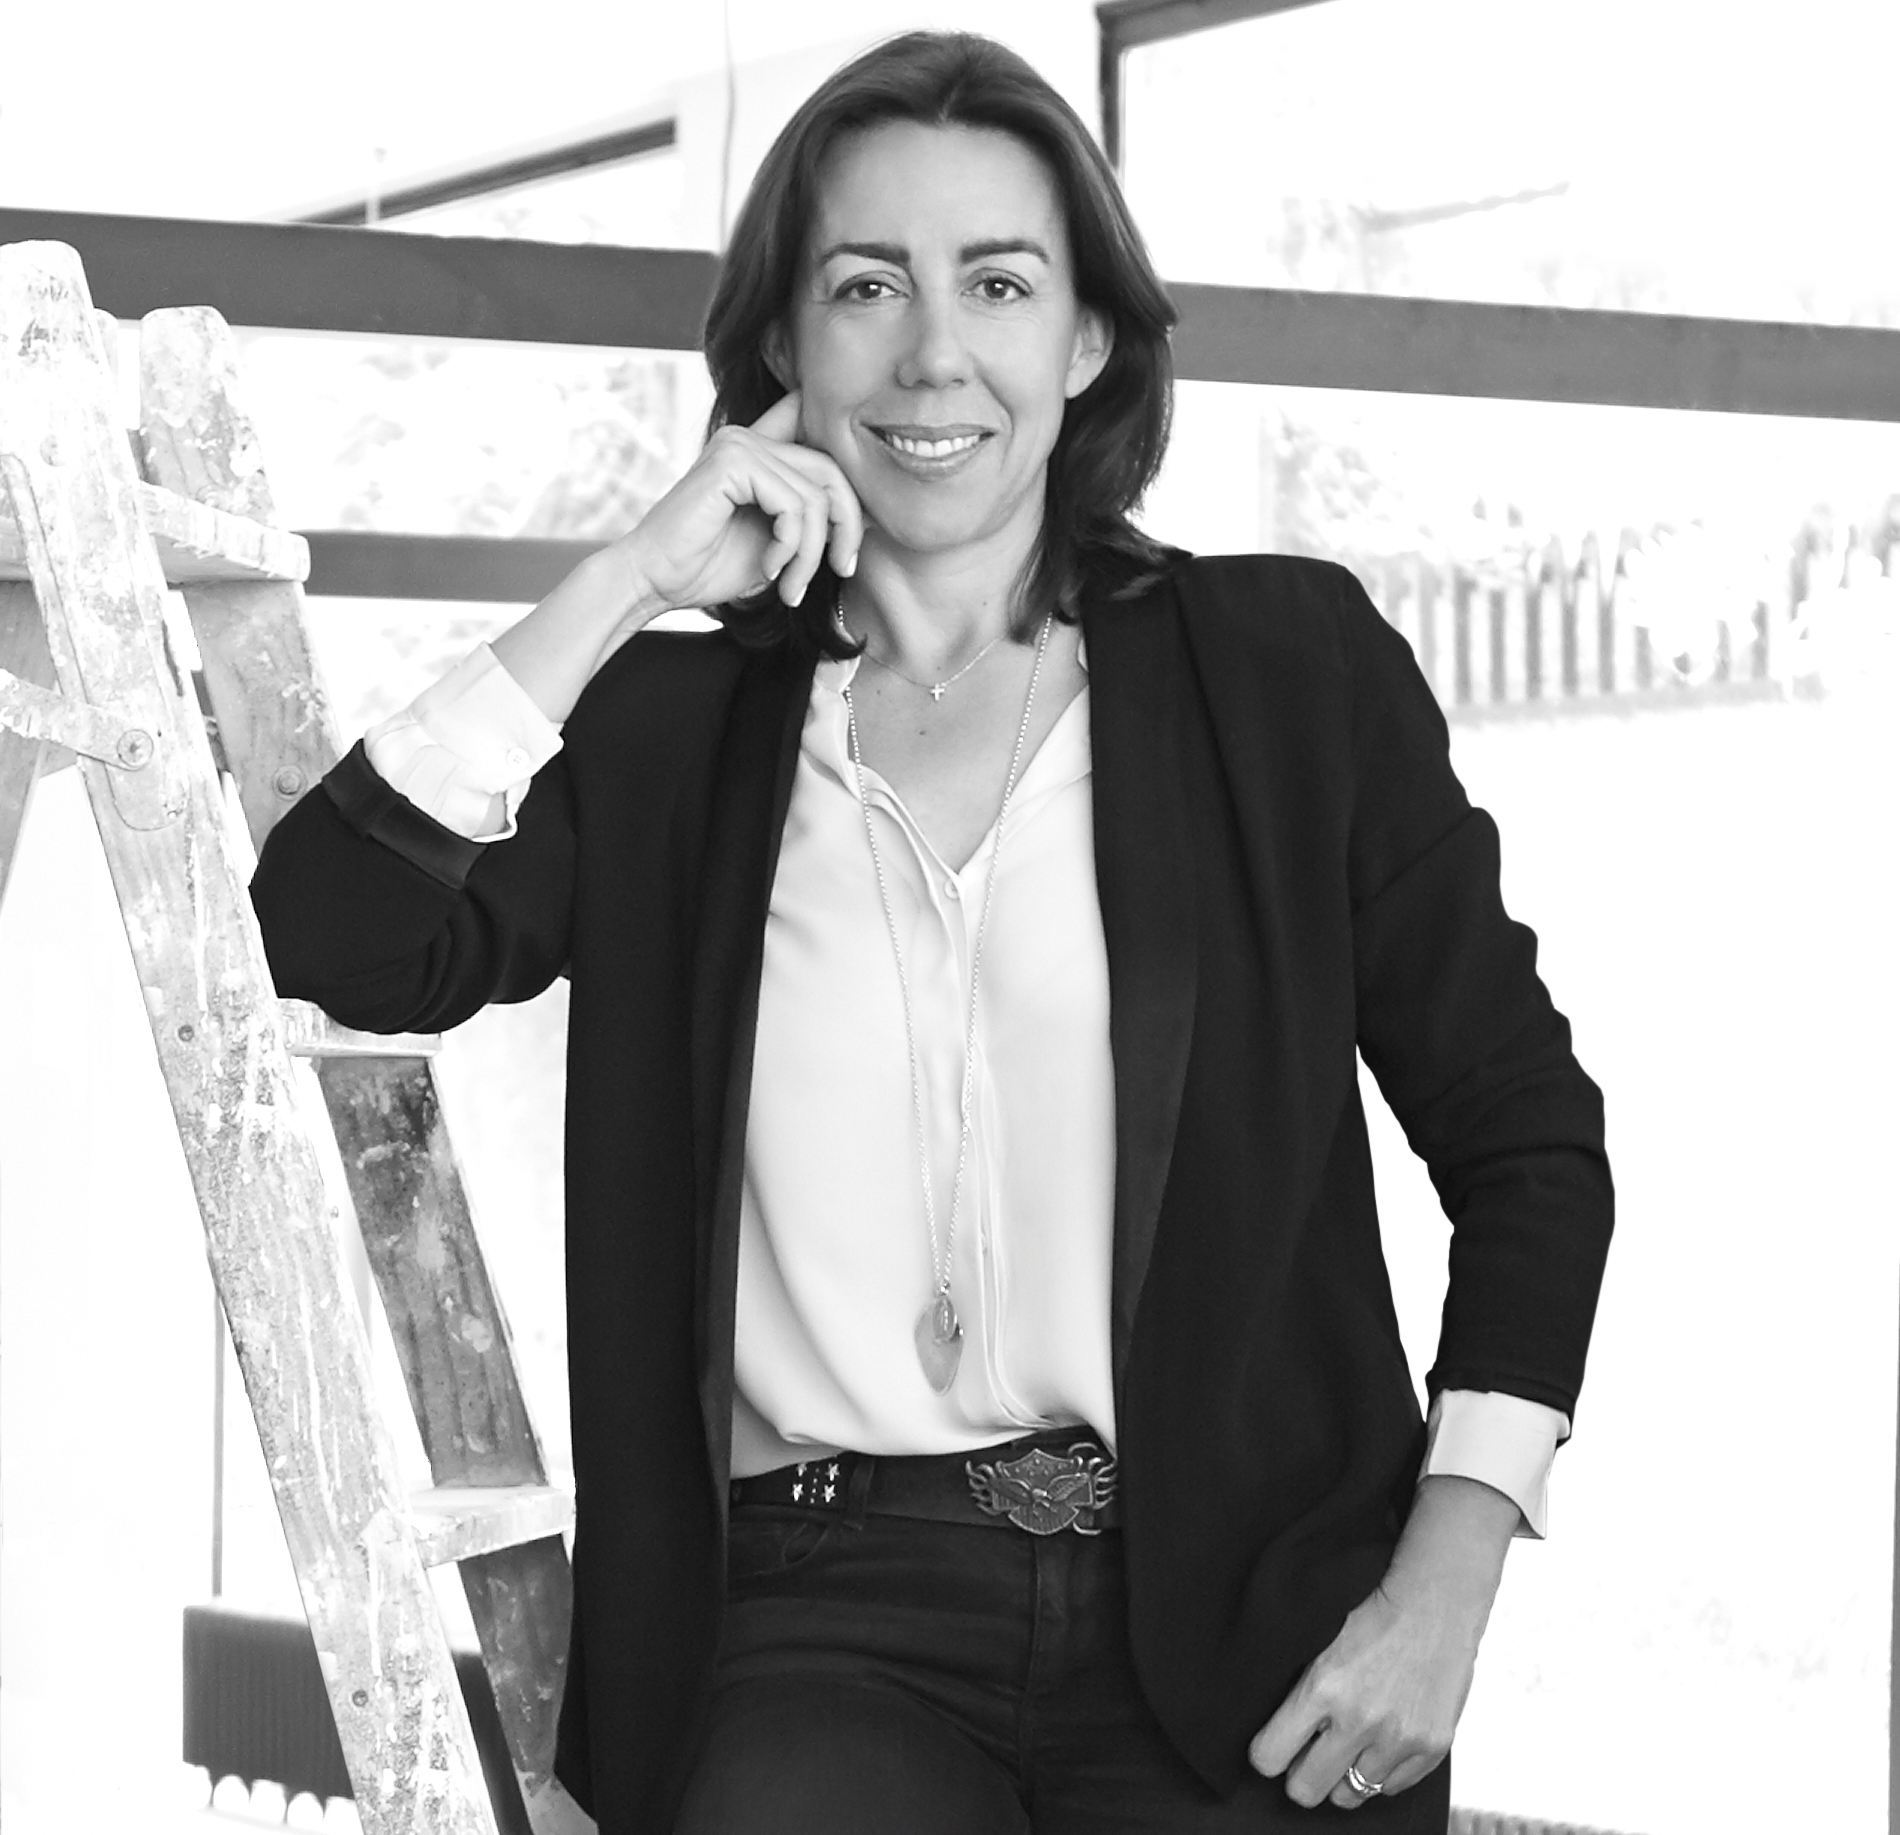 IN CONVERSATION WITH LUISA OLAZÁBAL